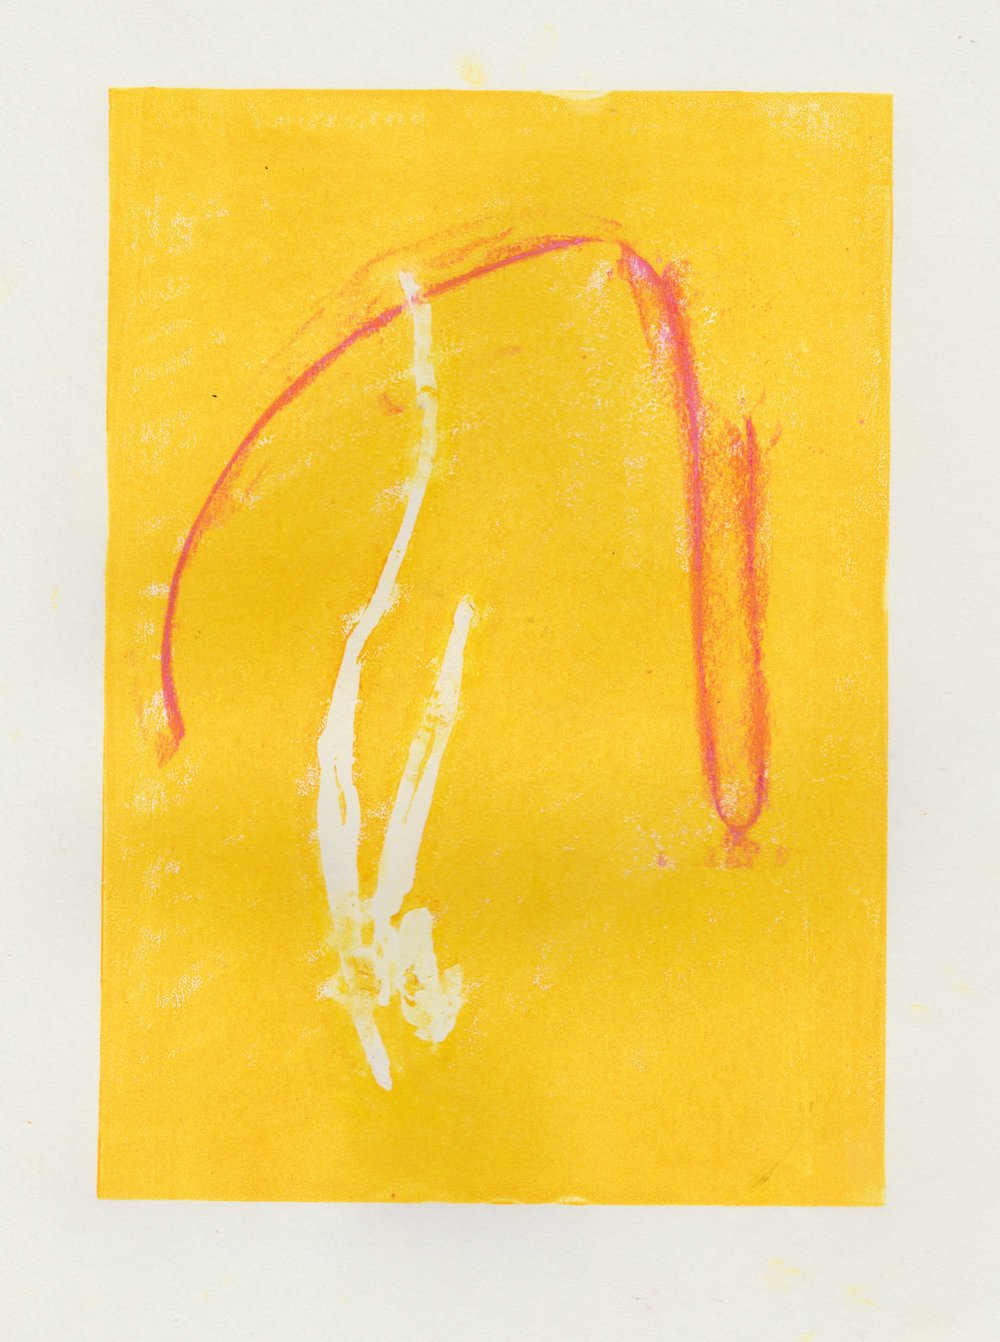 (Yellow Thursday) Lino print and soft pastel rubbing with masking fluid on paper // March 2018